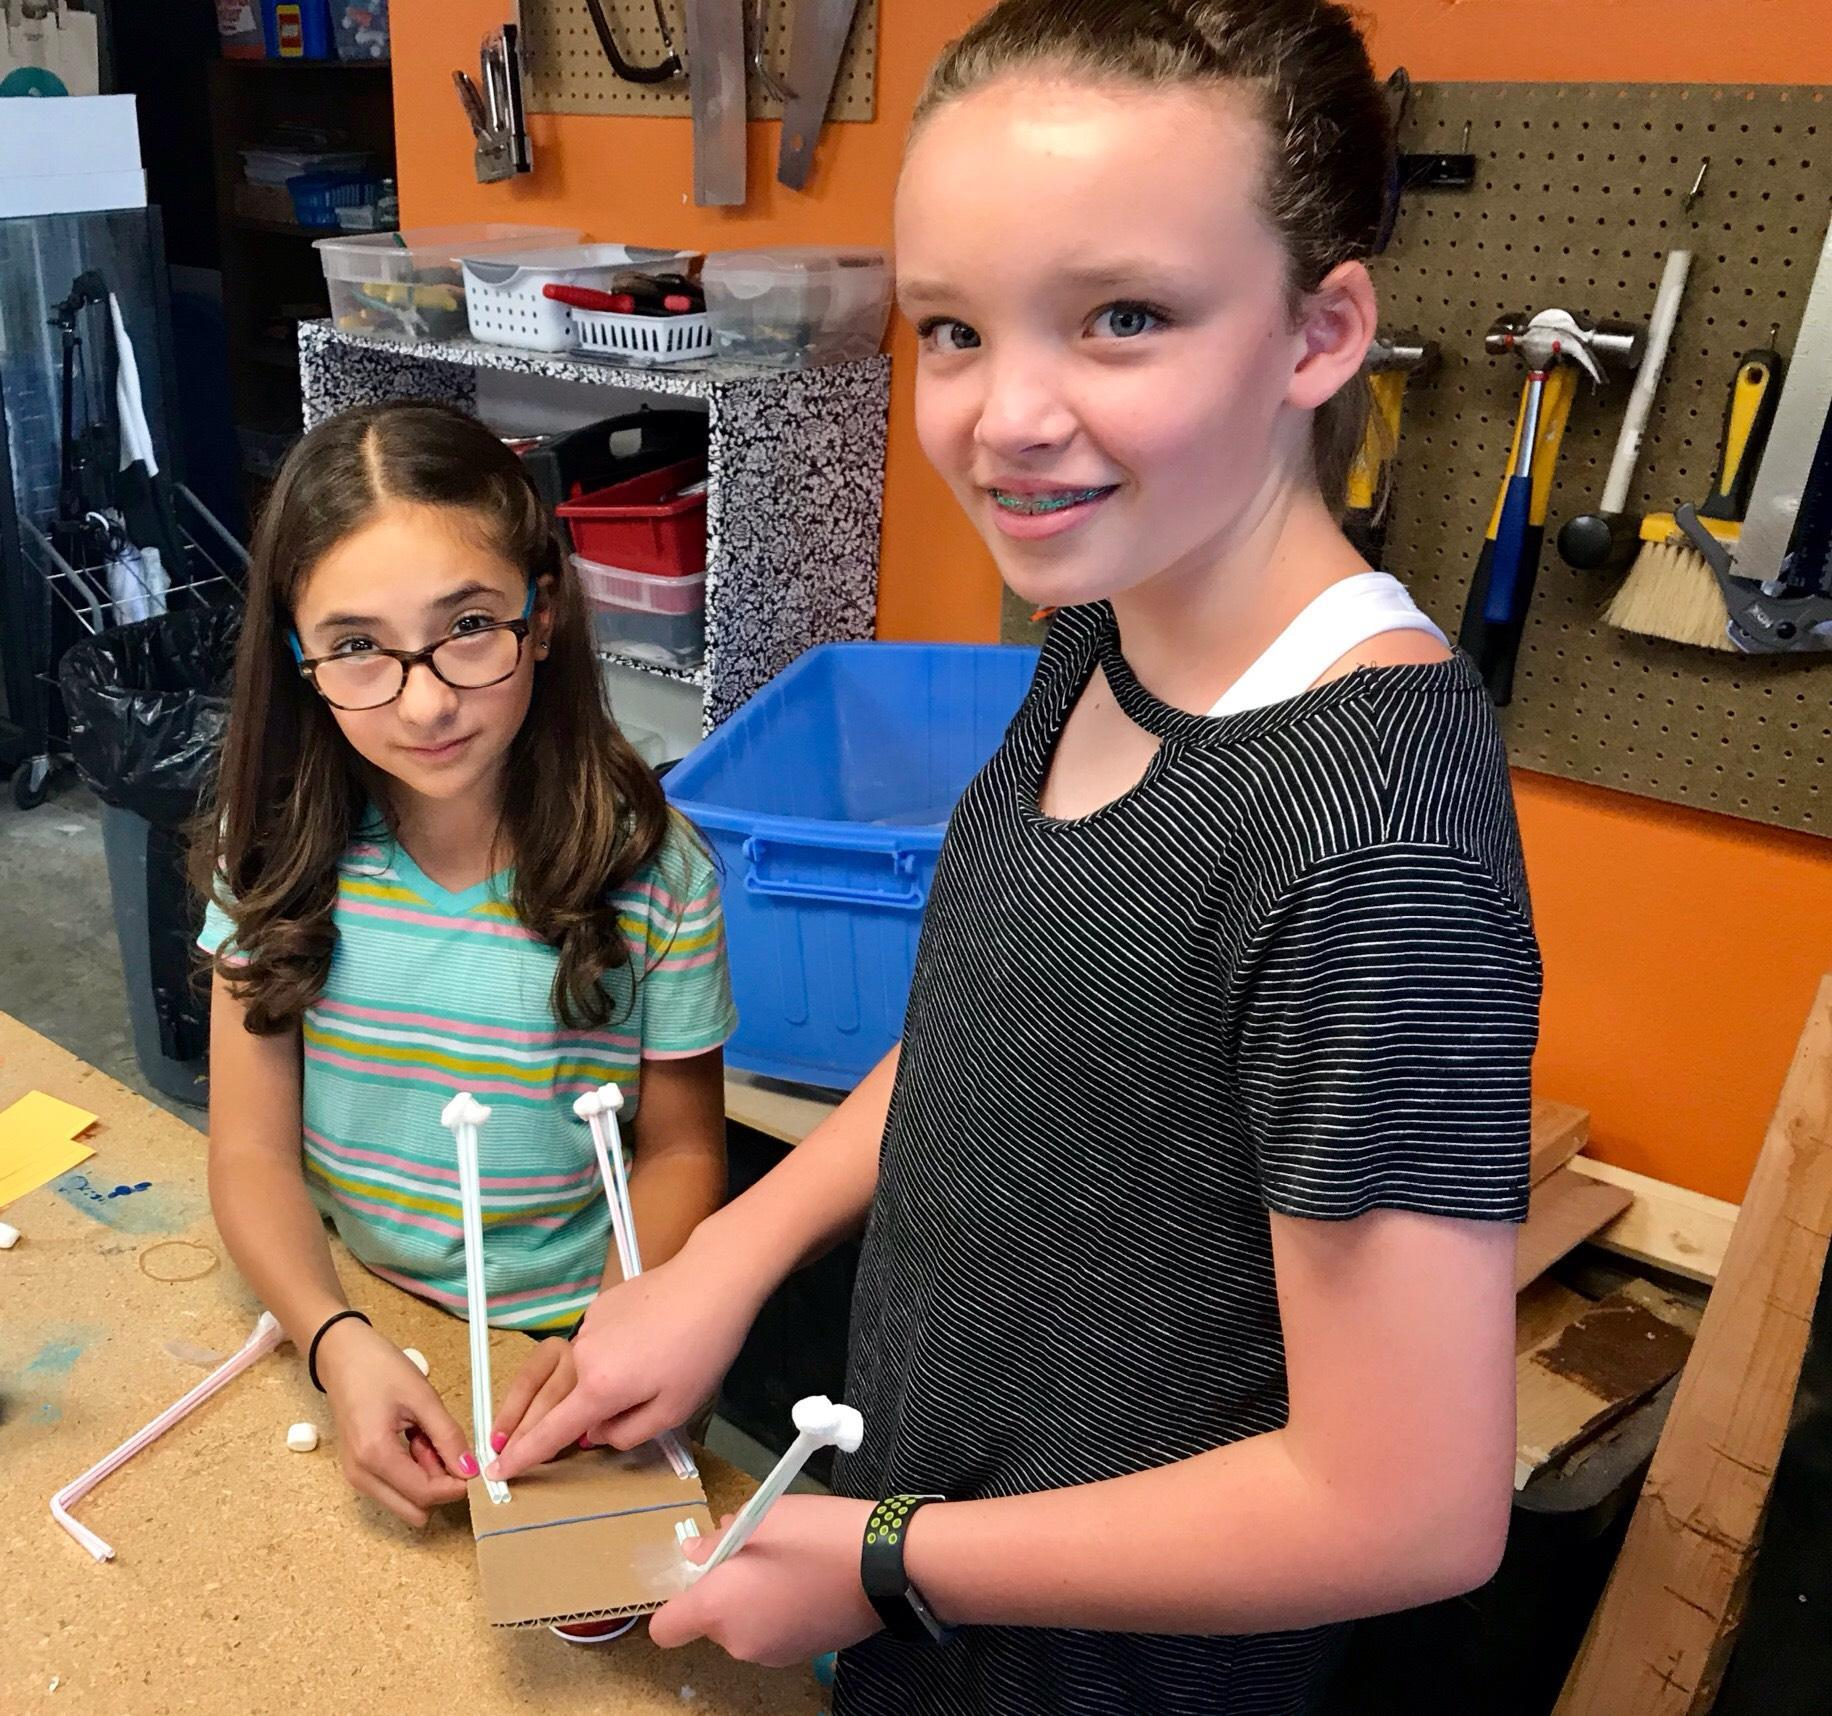 Middle school girls work on DareDevil Design project together